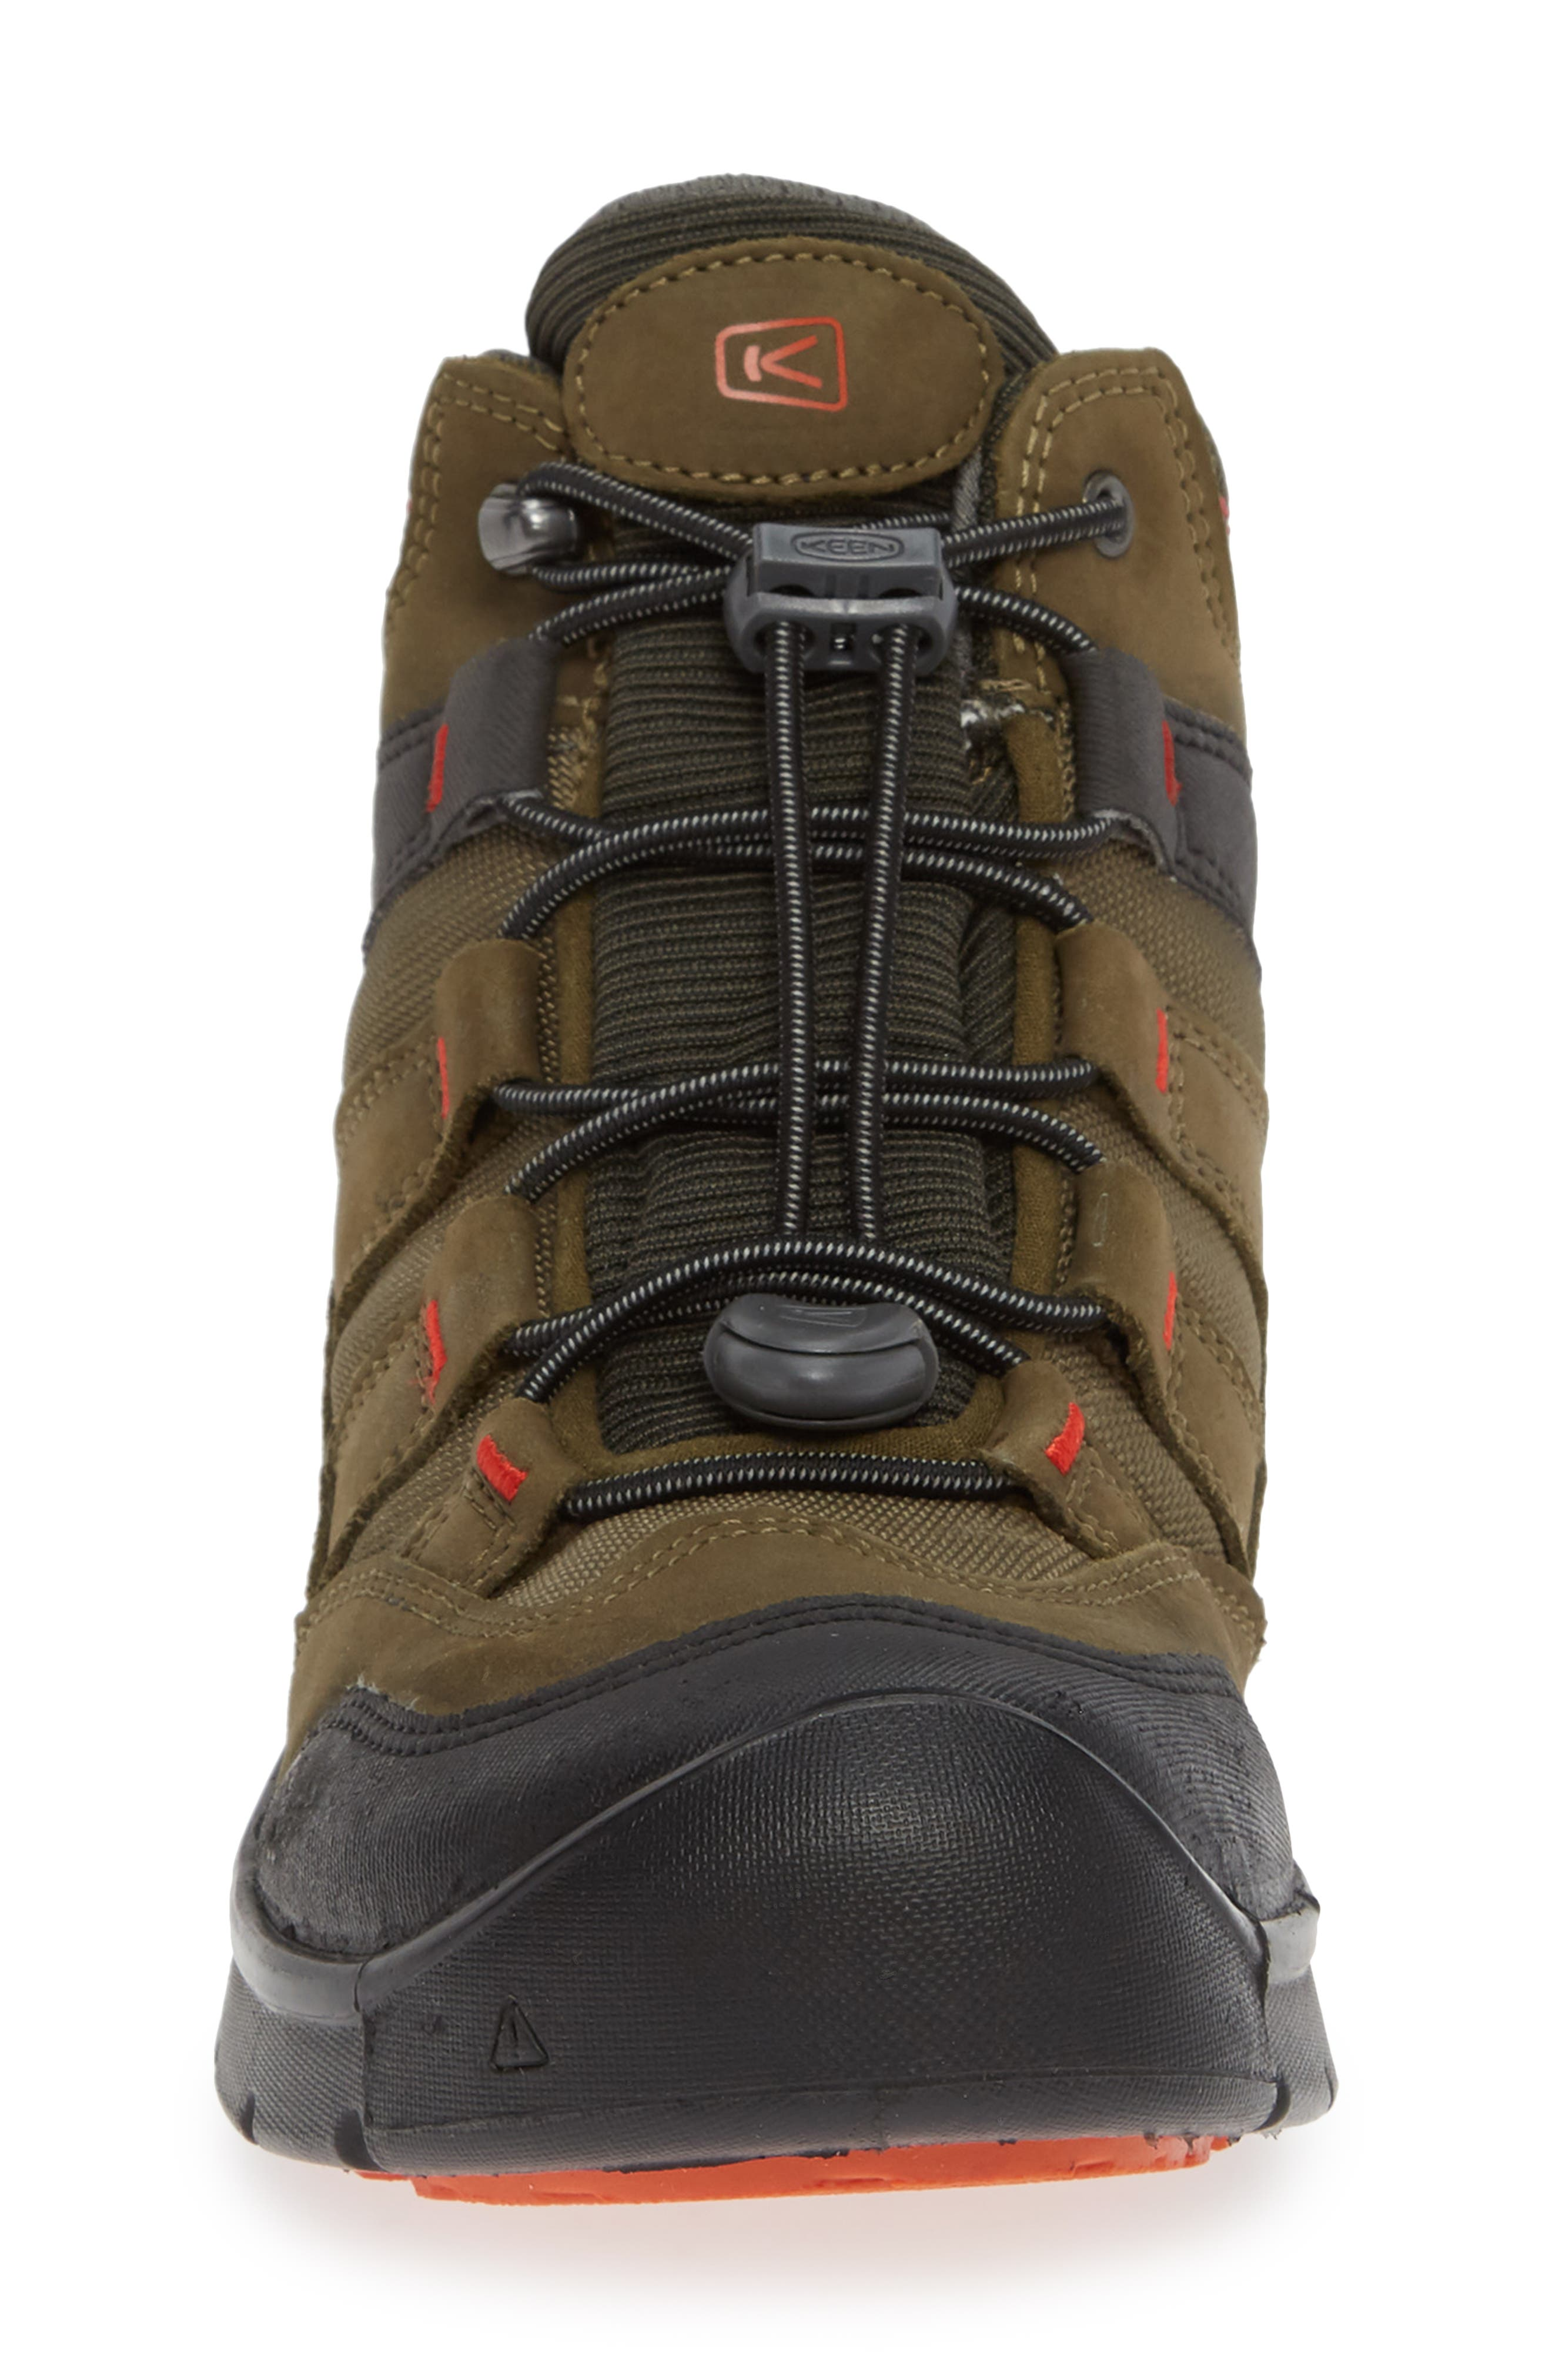 Hikeport Strap Waterproof Mid Boot,                             Alternate thumbnail 4, color,                             MARTINI OLIVE/ PUREED PUMPKIN